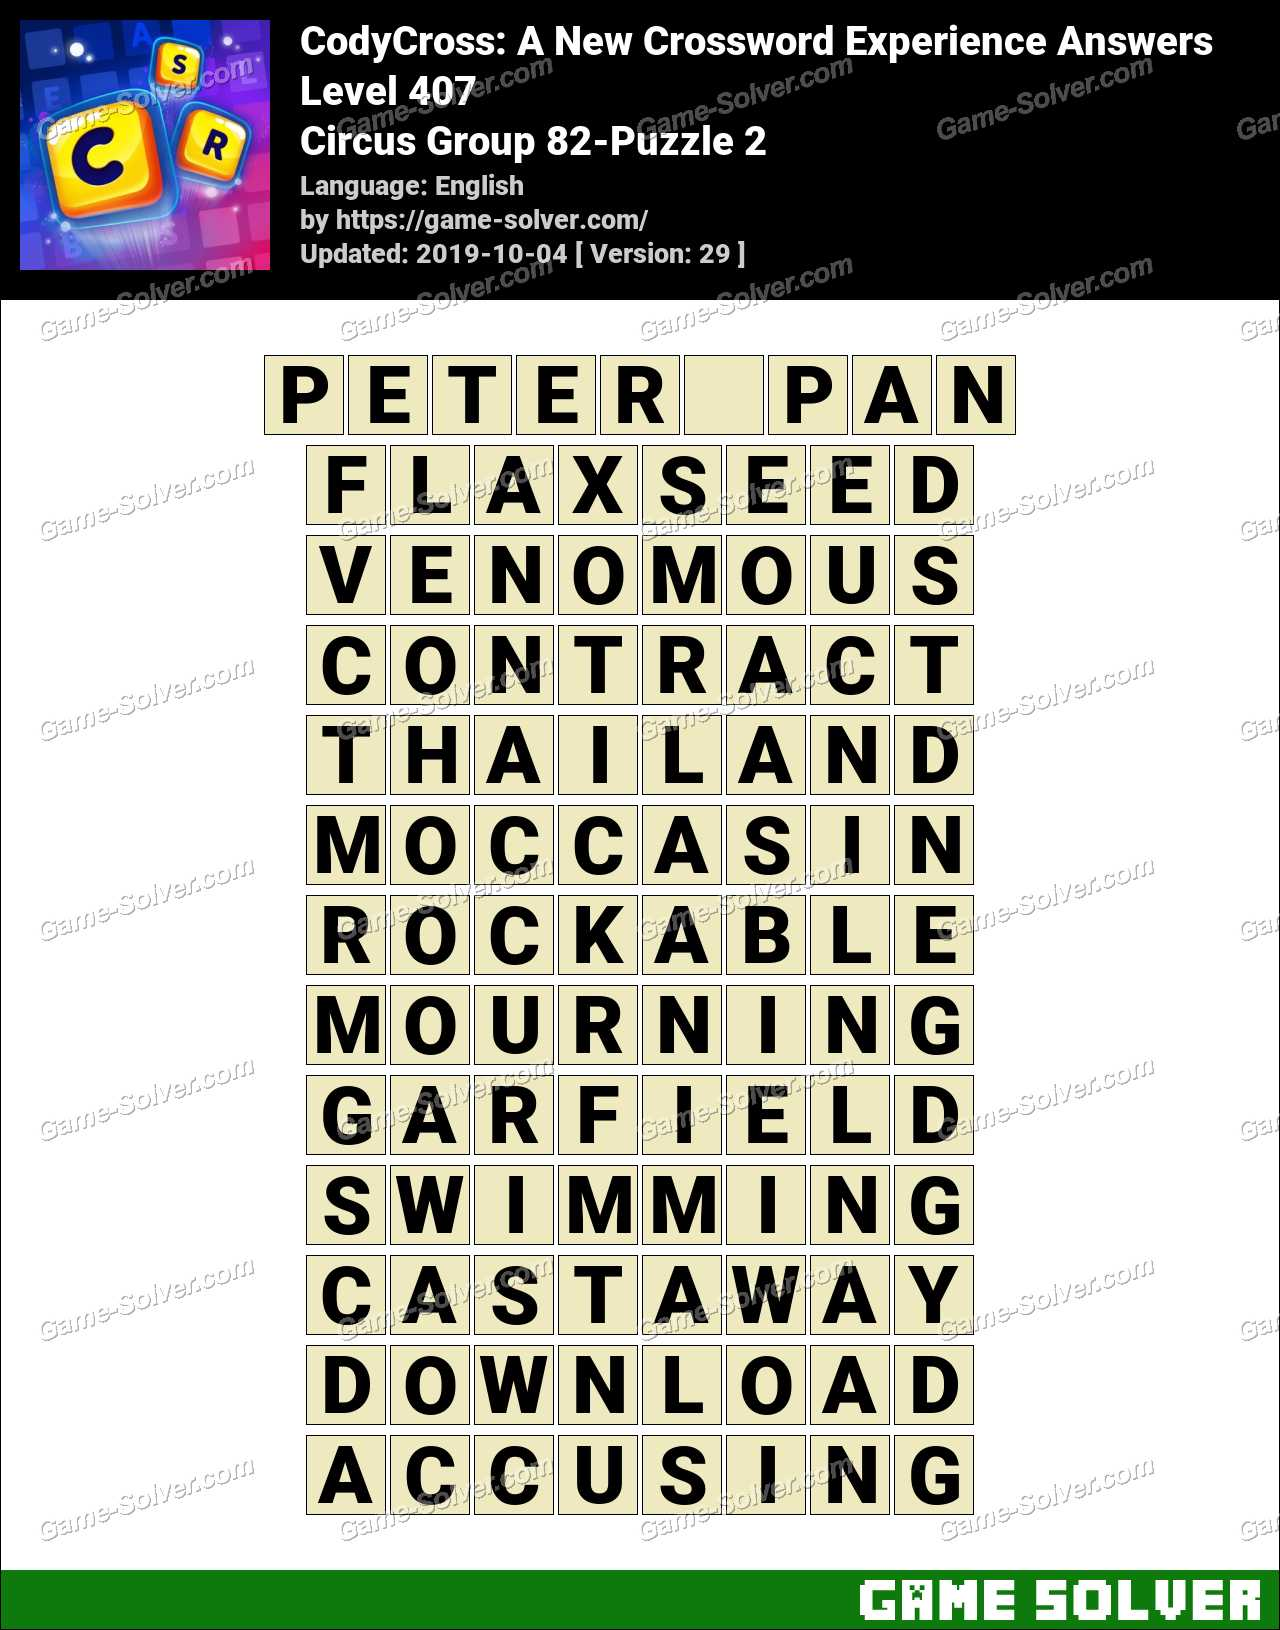 CodyCross Circus Group 82-Puzzle 2 Answers